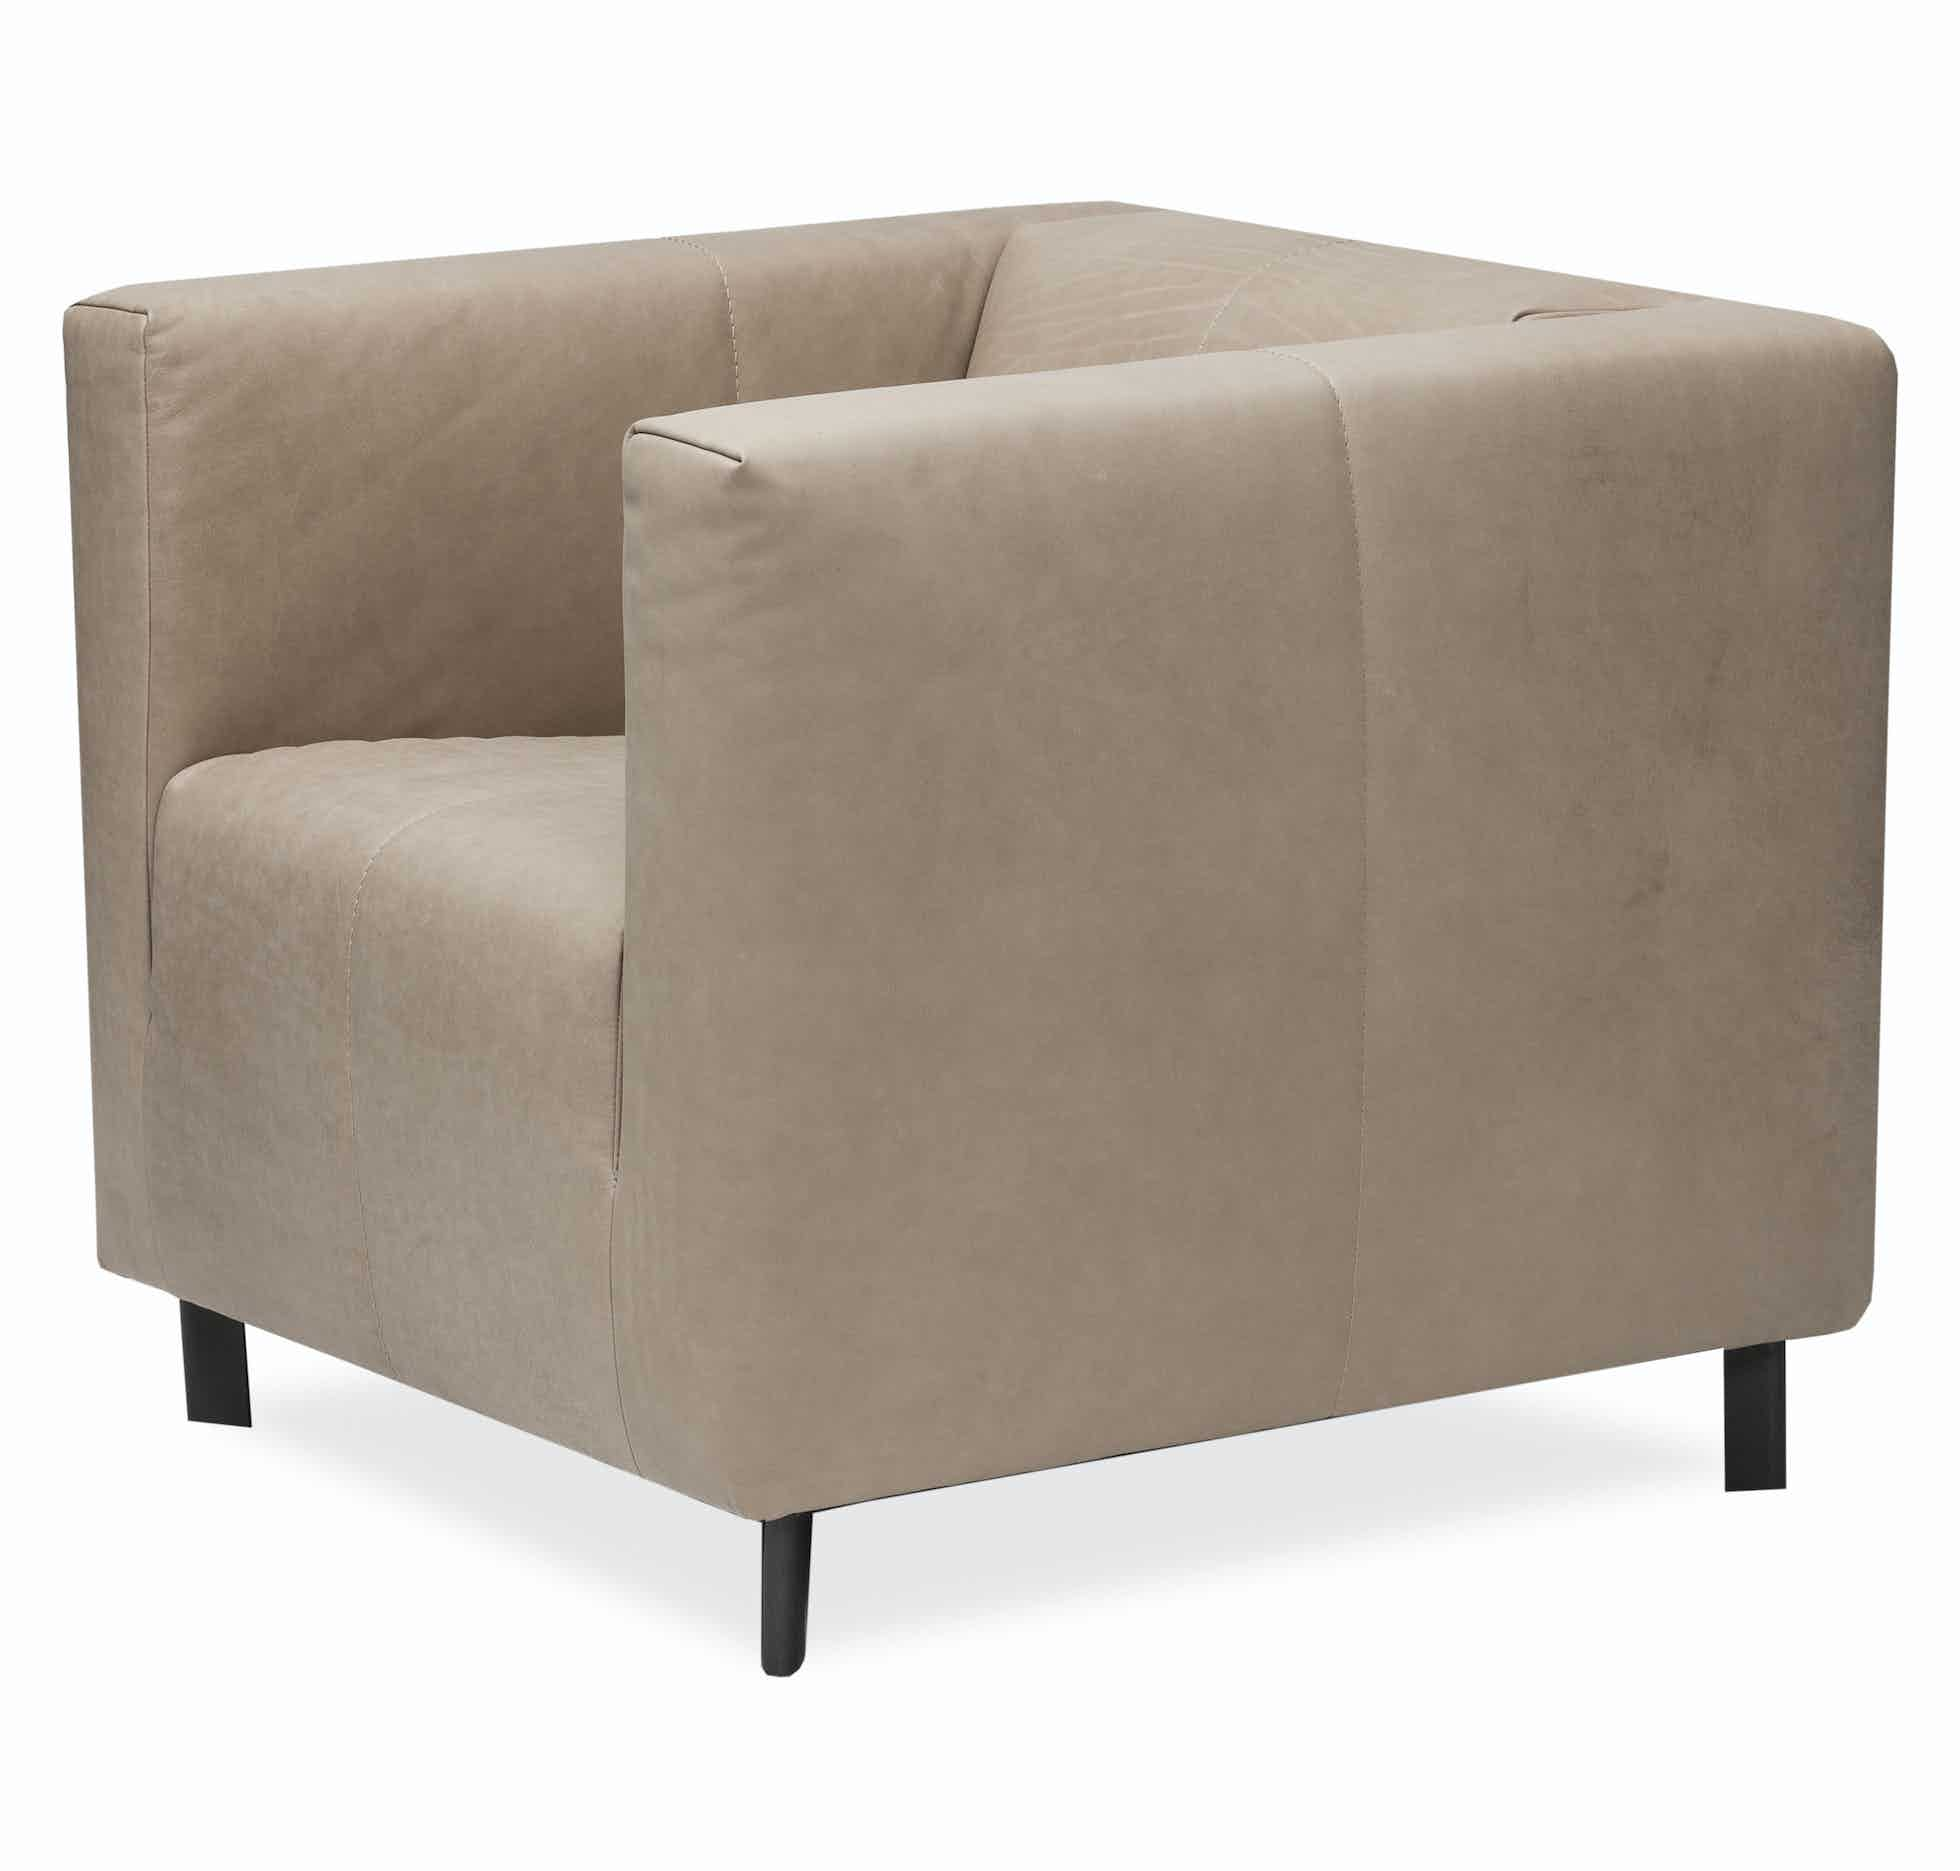 Linteloo-side-leather-desire-armchair-haute-living